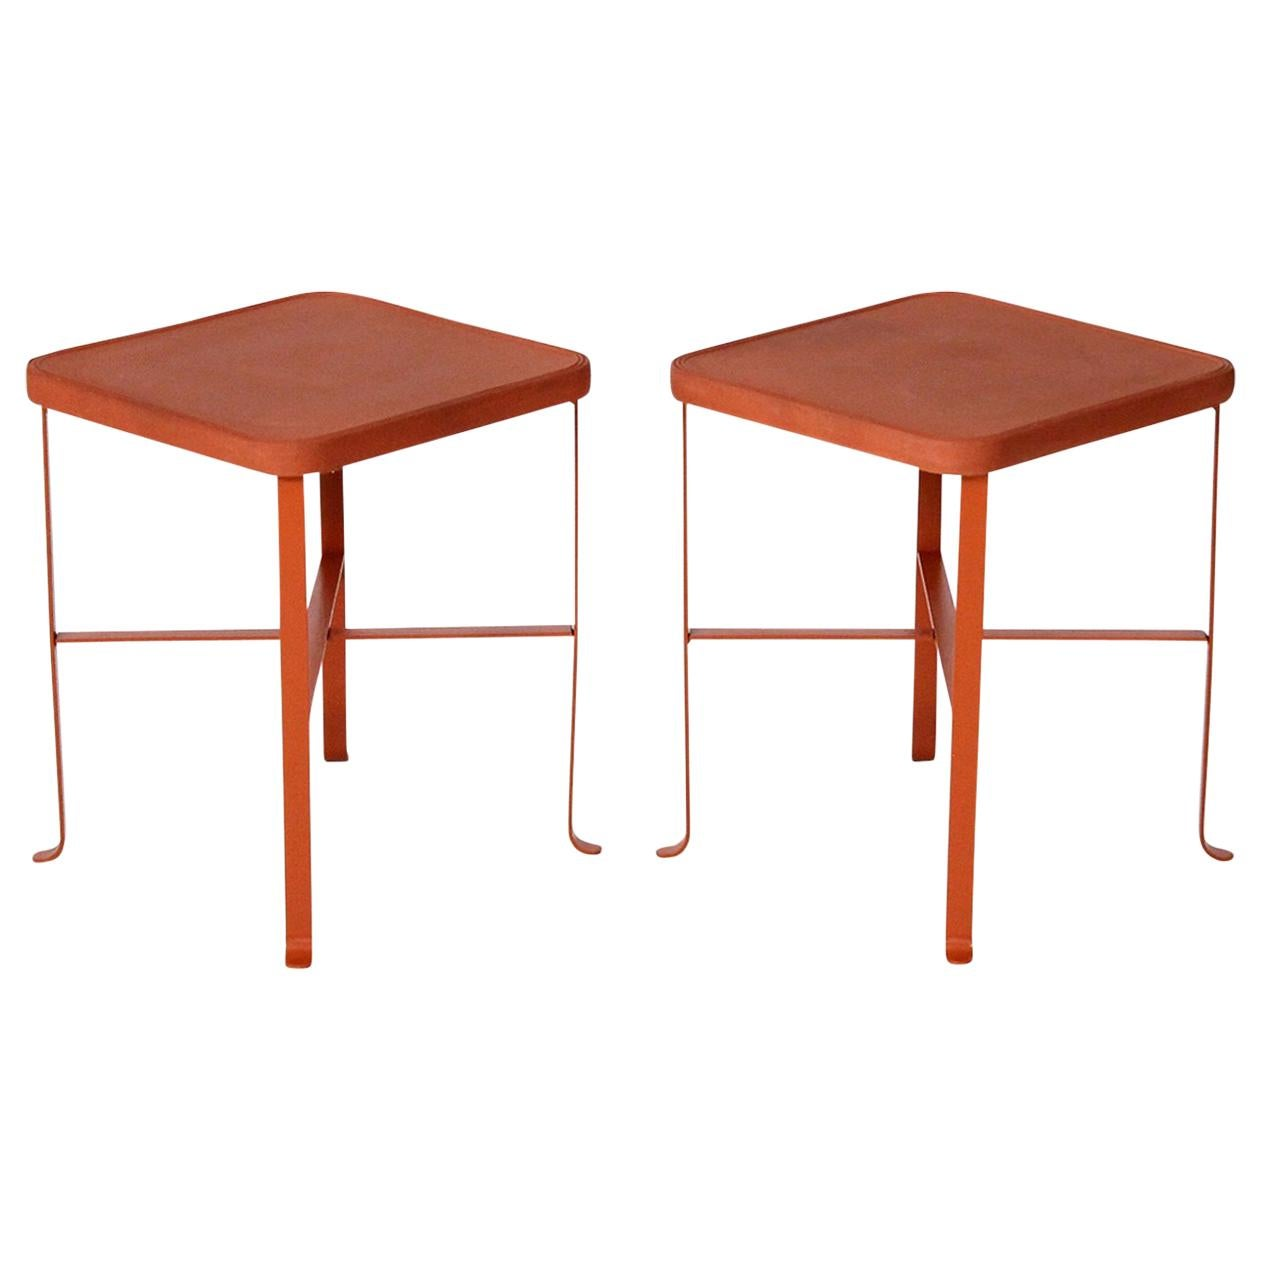 Awe Inspiring Pair Of Tom Dixon Spot Tables Gamerscity Chair Design For Home Gamerscityorg